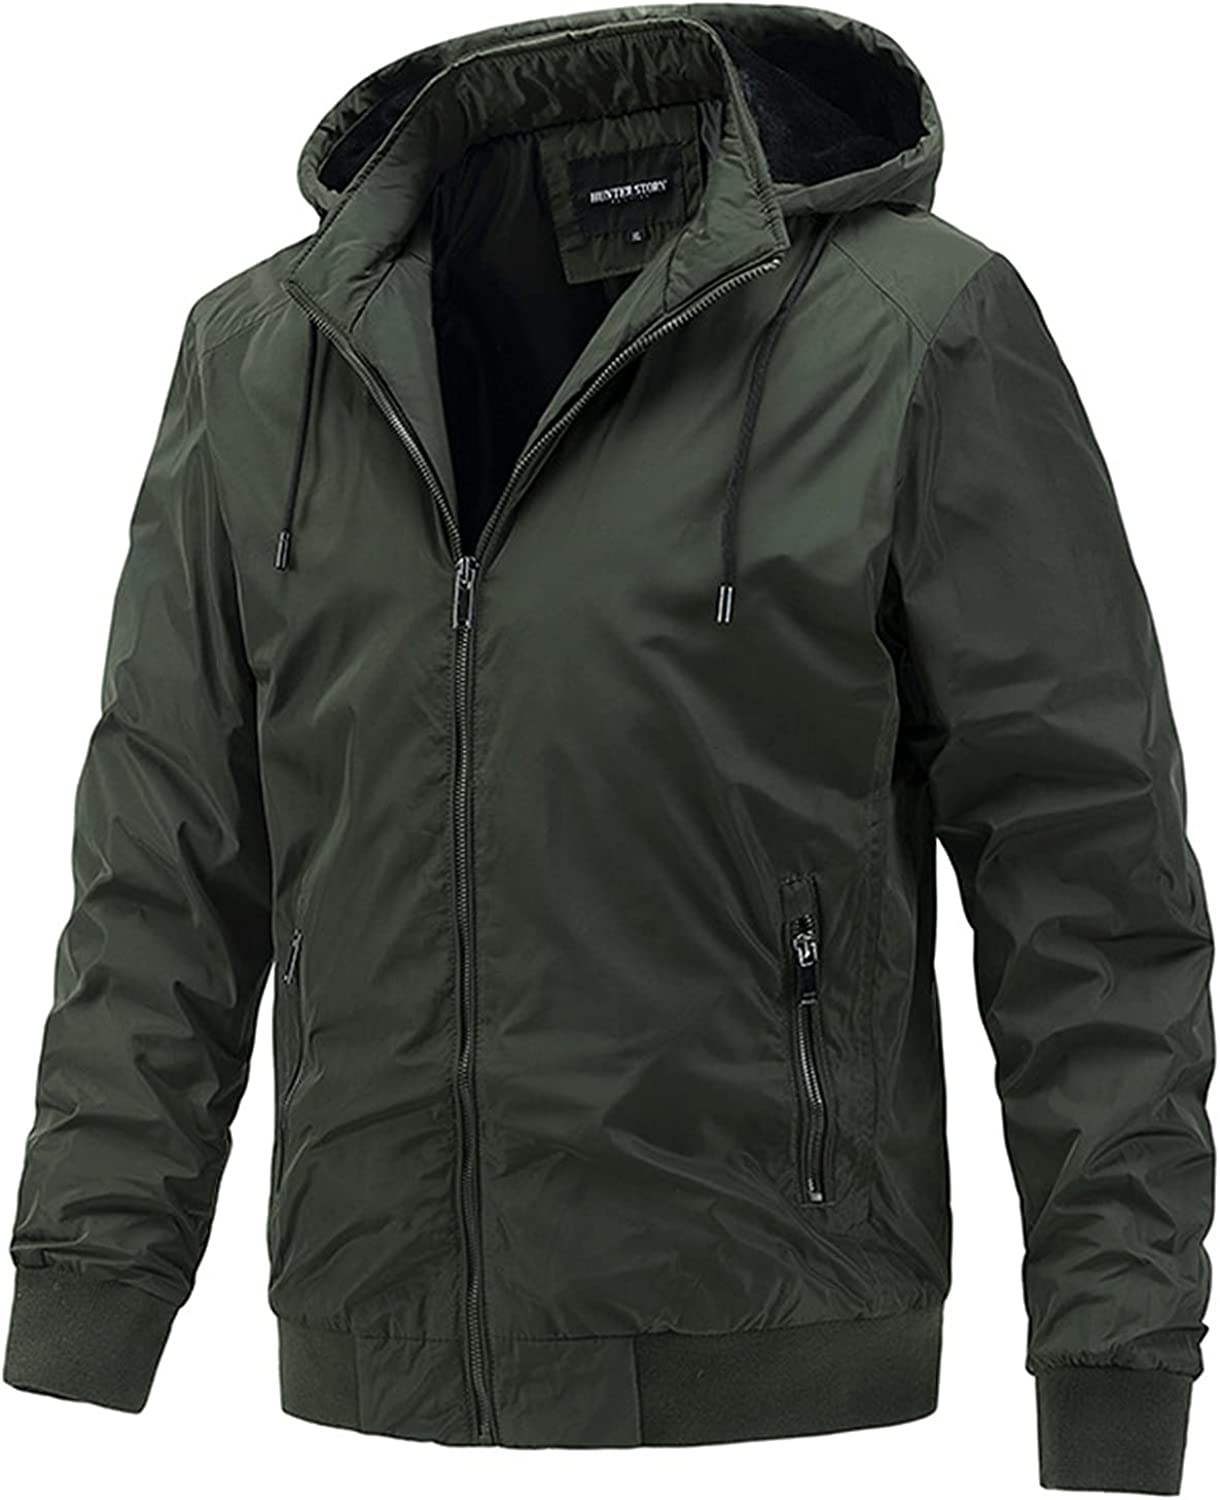 Men's Detachable Hooded Jacket,Casual Sports Thin Cotton Outerwear,Windproof and Warm Coat